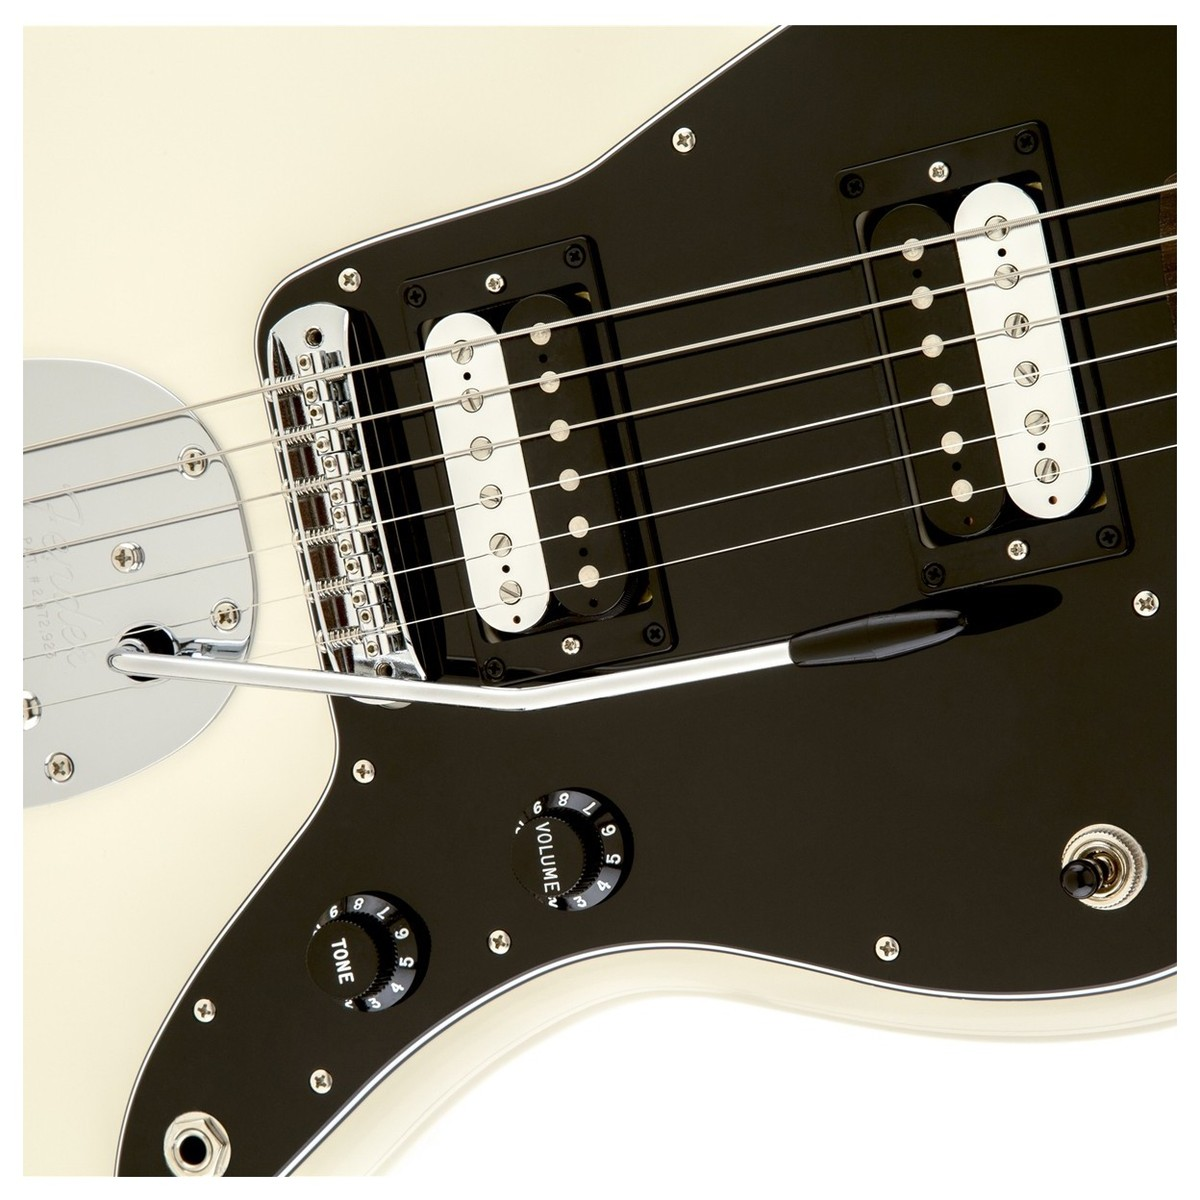 Disc Fender Standard Jazzmaster Hh Pf Olympic White At Gear4music Squier Vm Surf Strat Wiring Diagram Loading Zoom